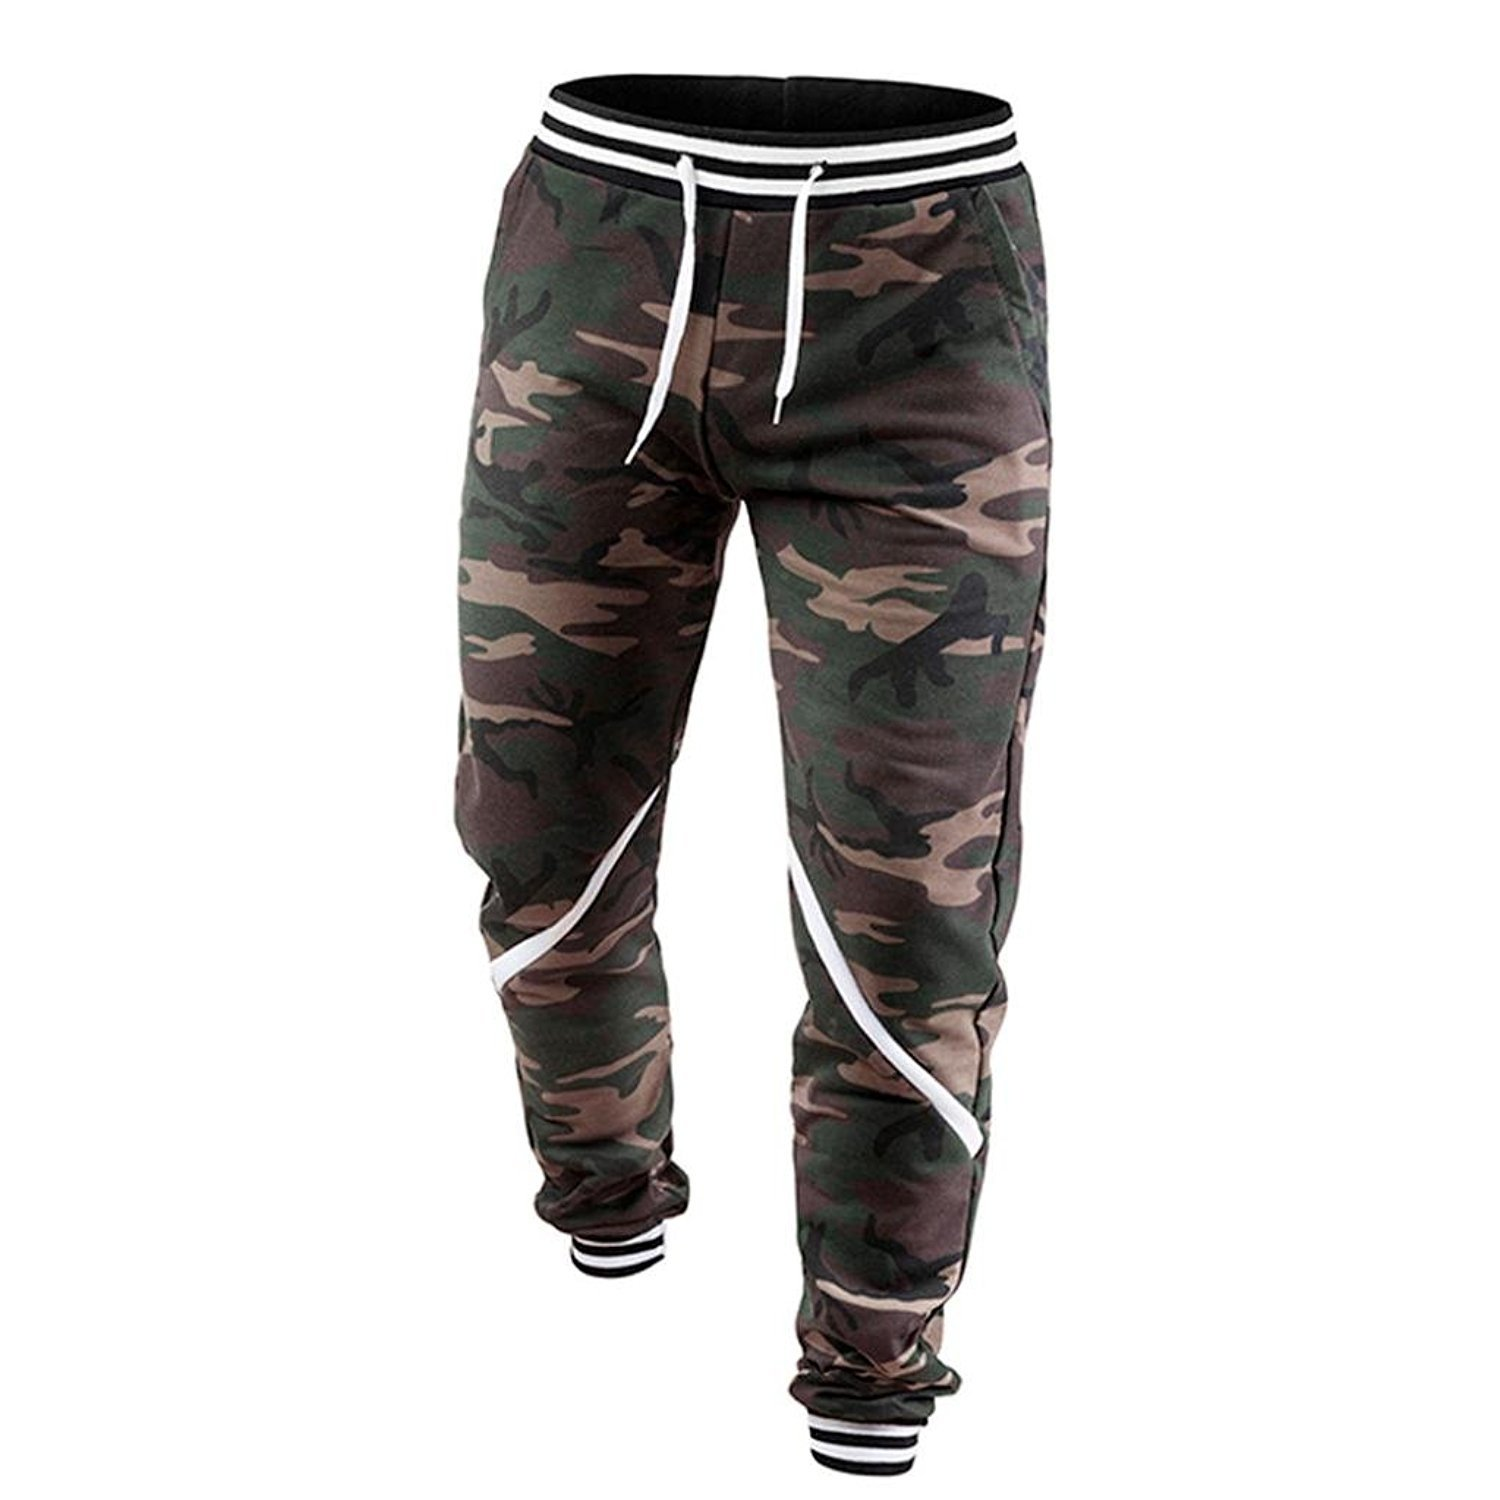 Newest Men Camouflage Breathable Joggers ❃❃ Casual Pants Sweatpants